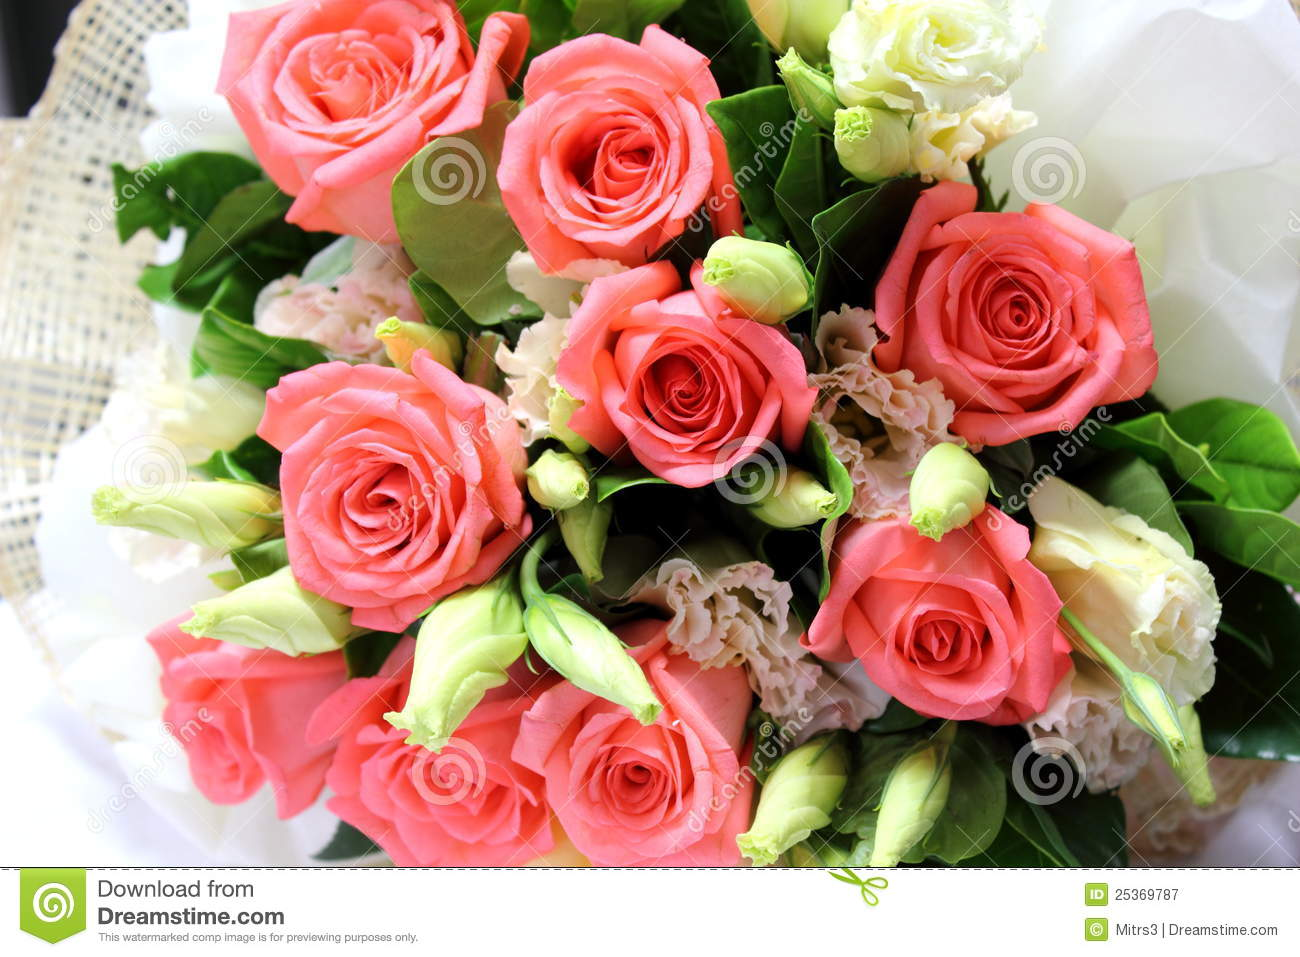 Free picture of bouquet of flowers graphic Bouquet of flowers pictures free - ClipartFest graphic